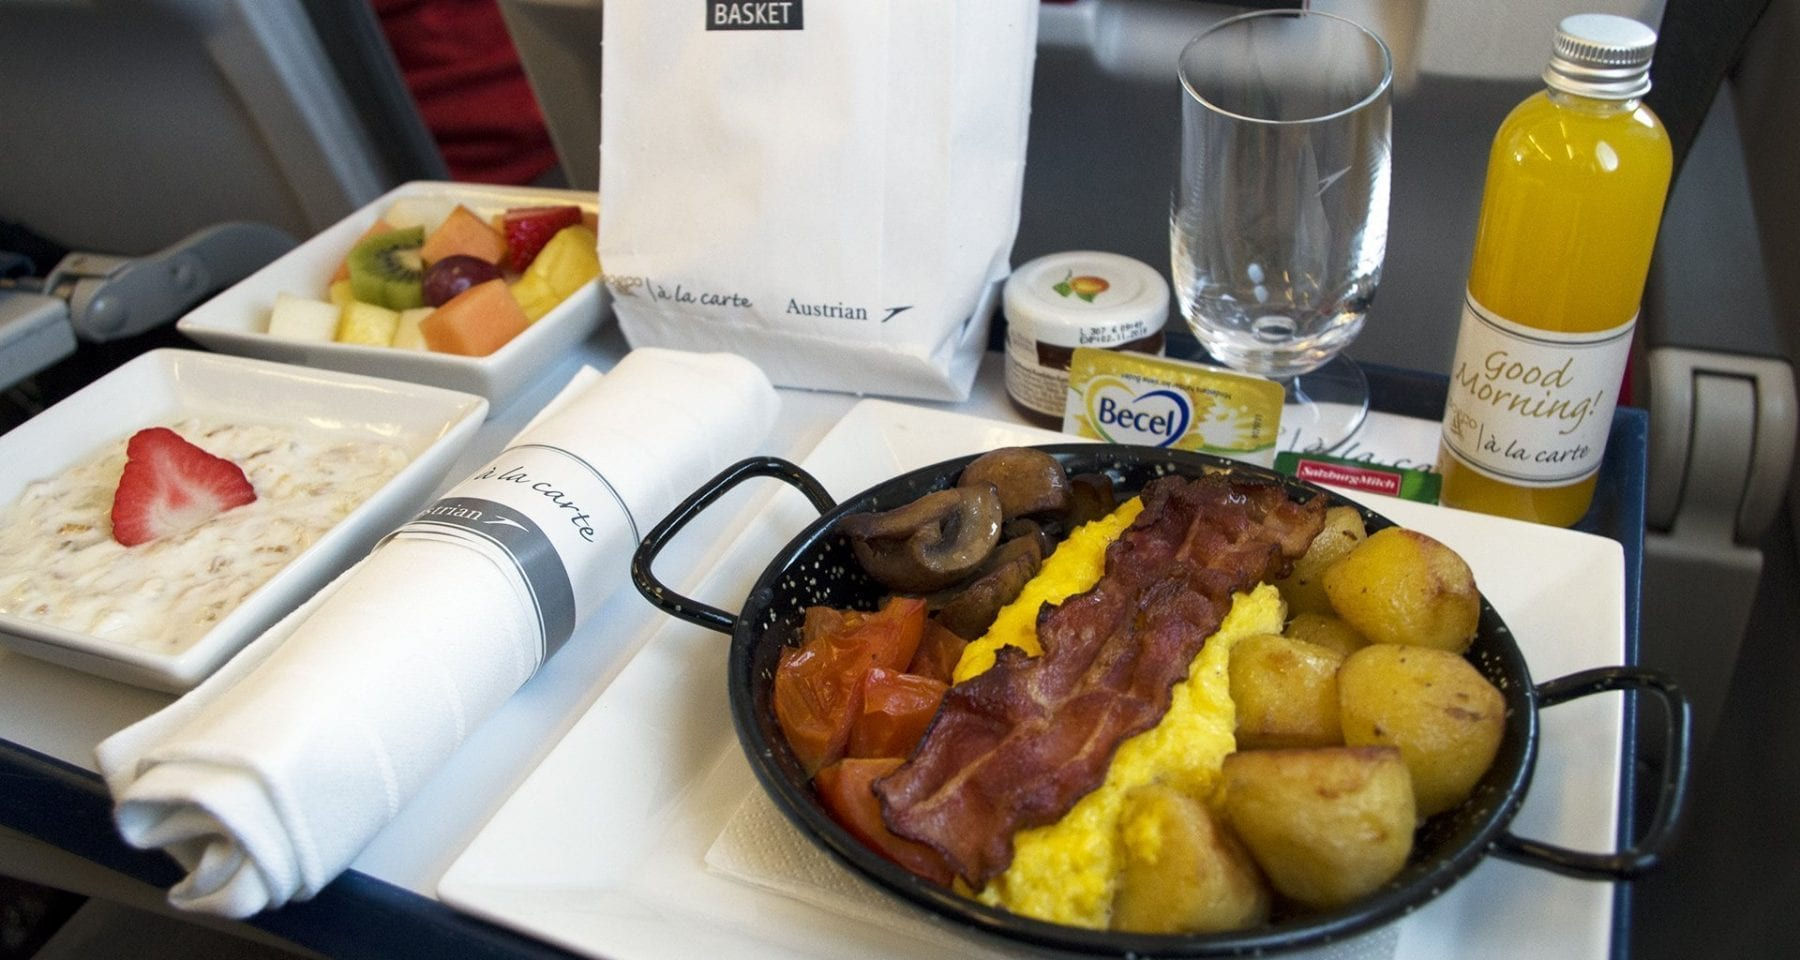 Austrian airlines do&co pre order meal breakfast